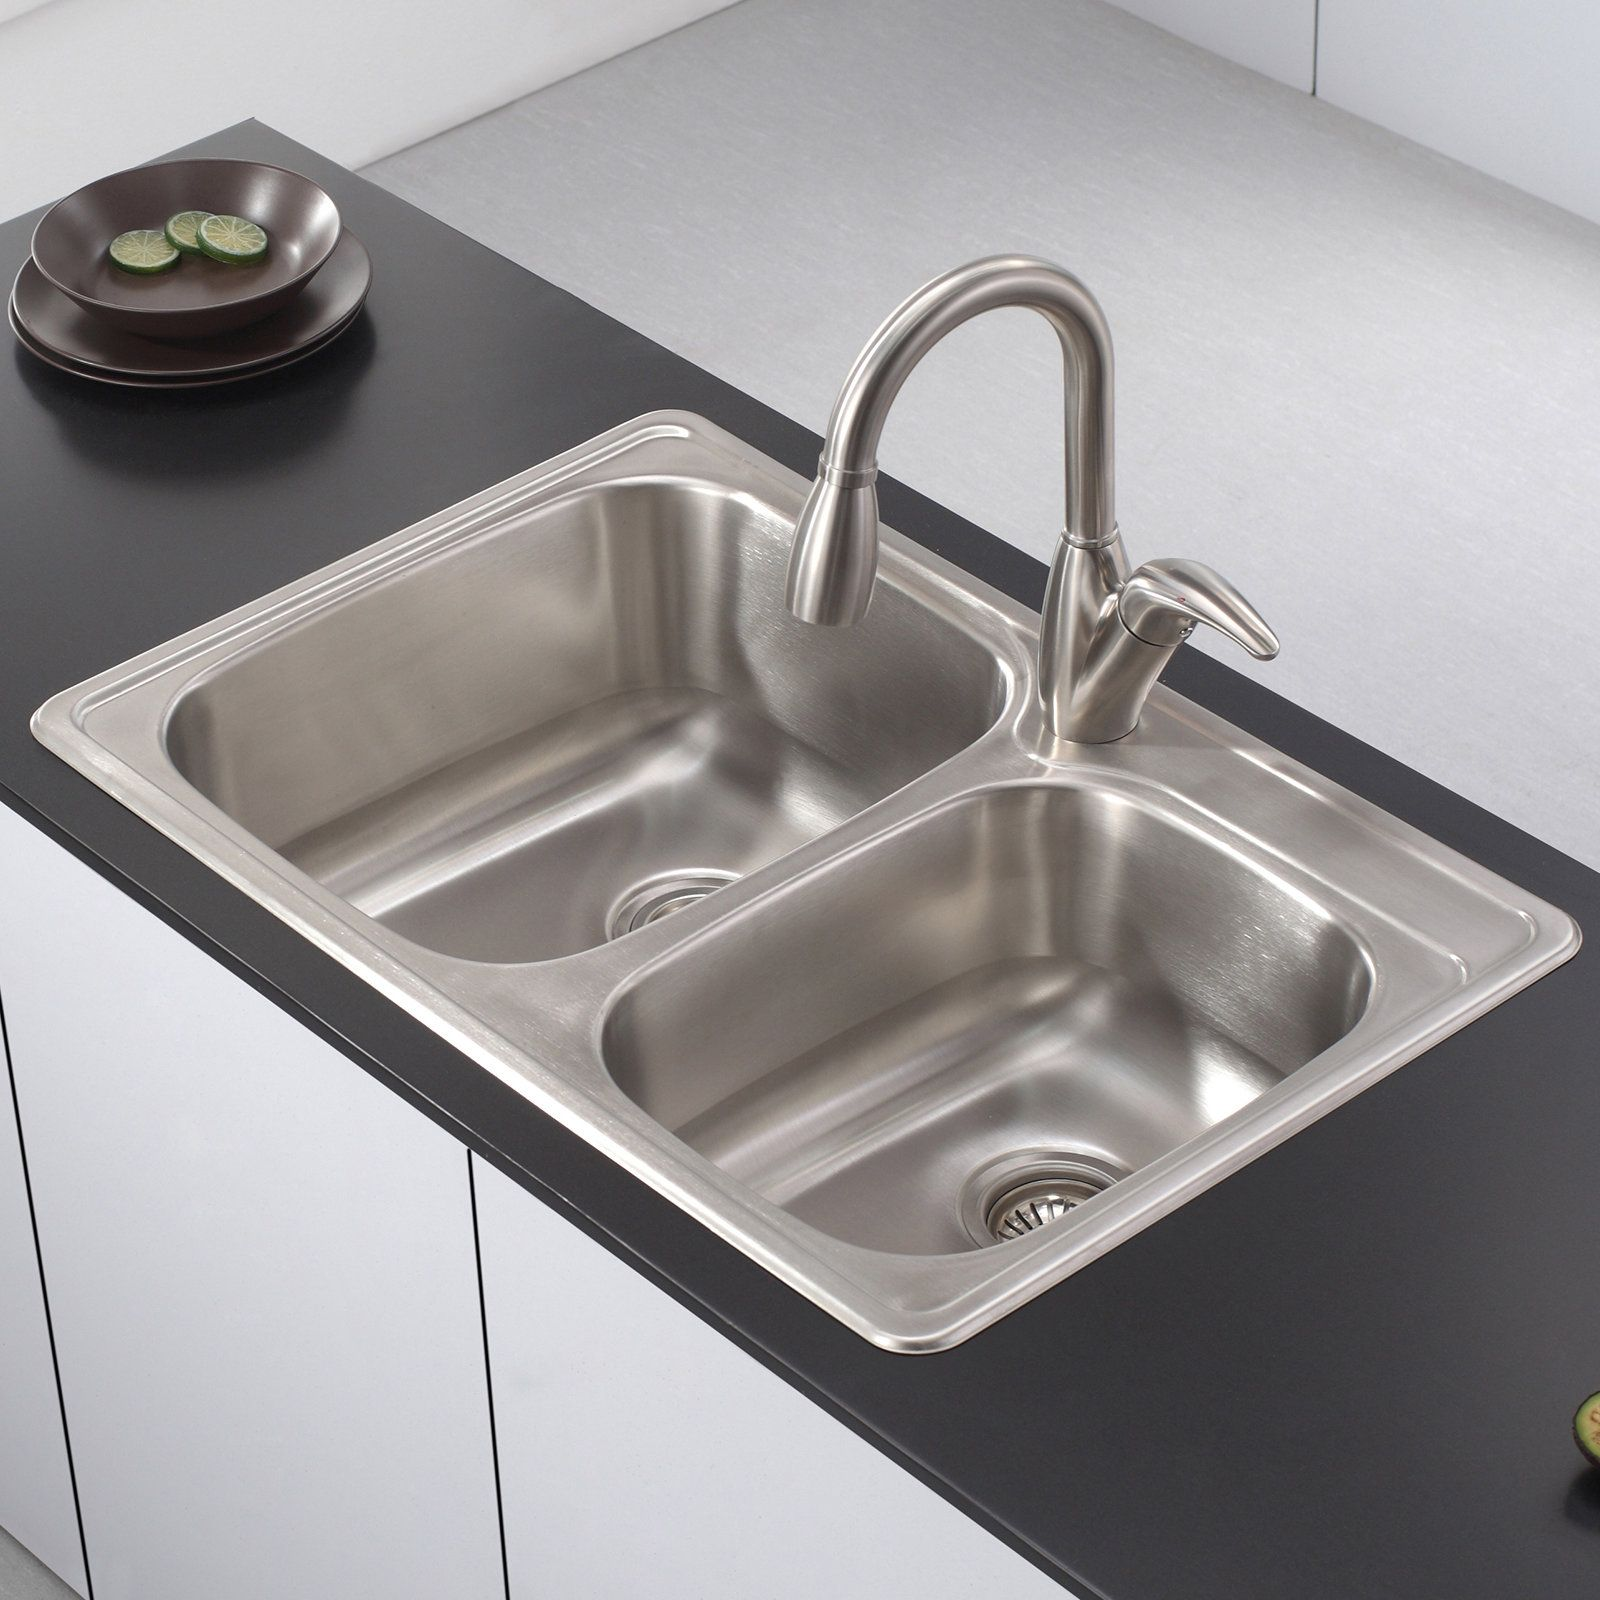 Kitchen Sink 33 L X 22 W Double Basin Drop In Kitchen Sink With